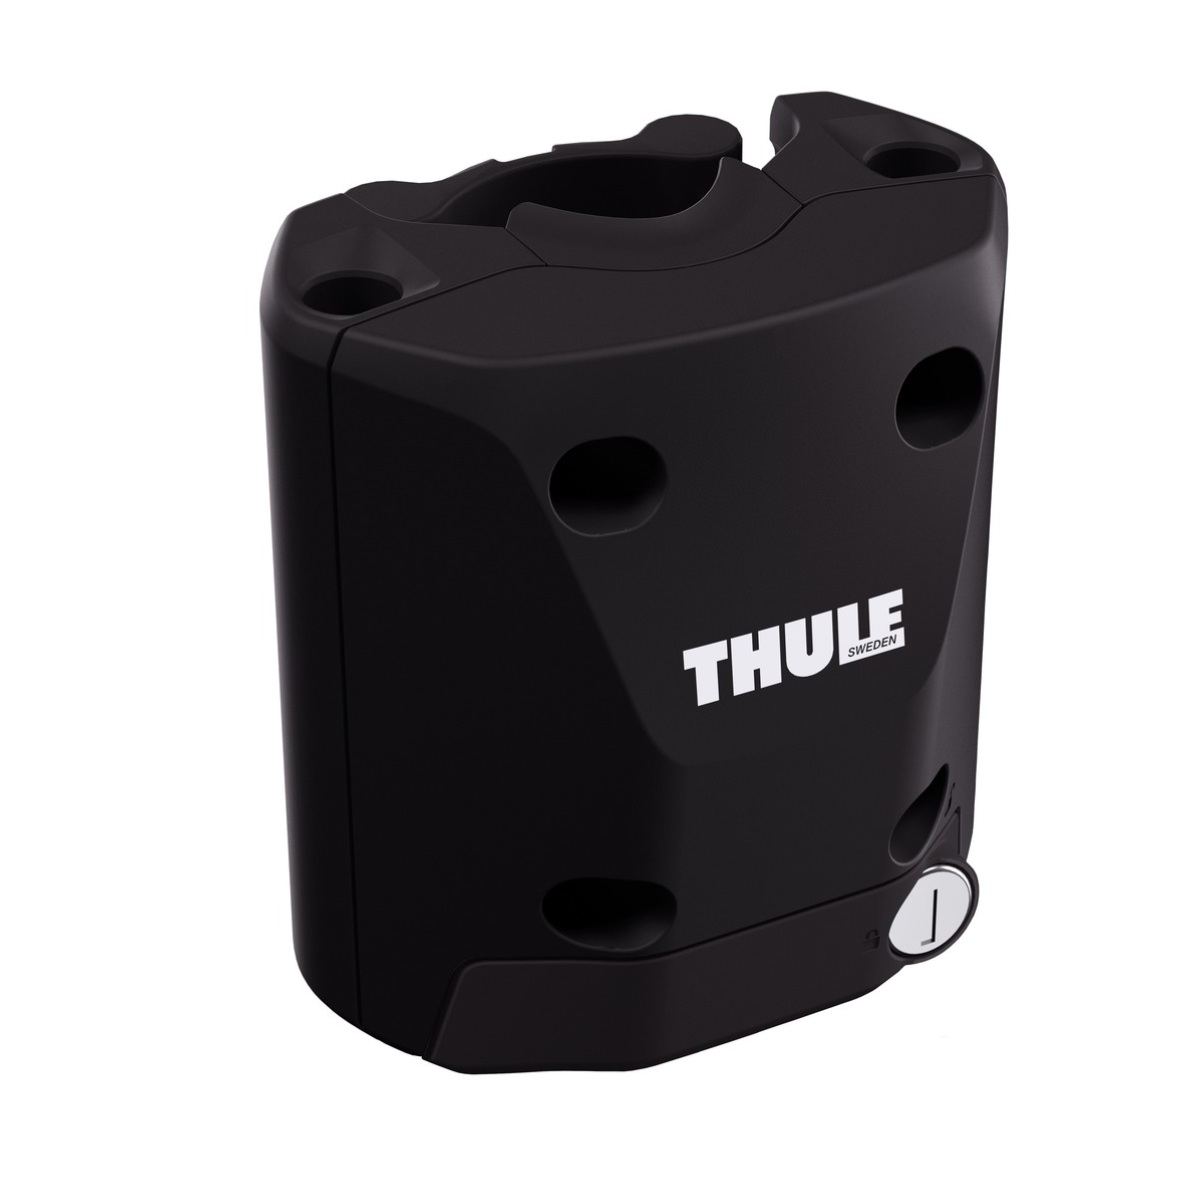 QUICK RELEASE RIDEALONG THULE